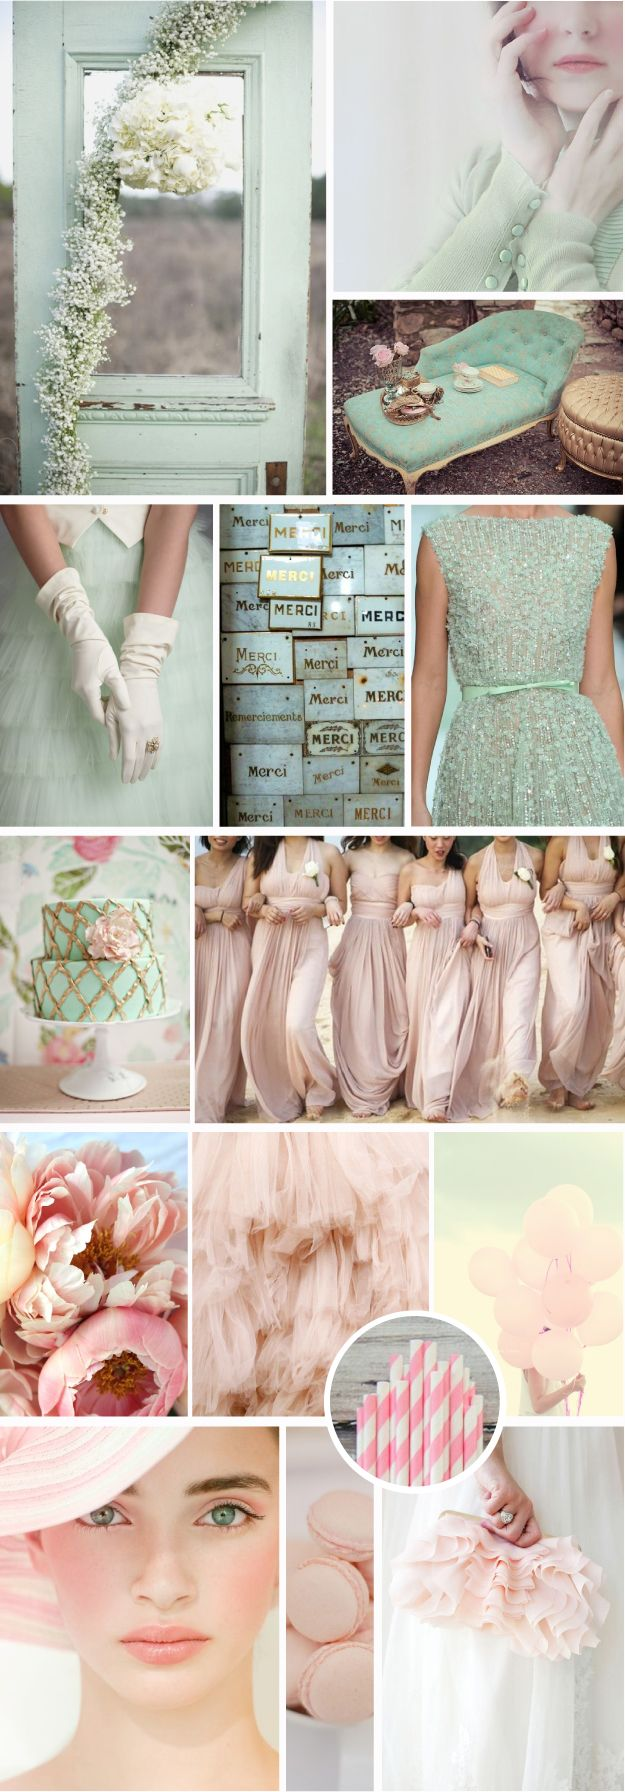 Blush and mint wedding inspiration from @Matt Nickles Nickles Valk Chuah White Dress by the shore